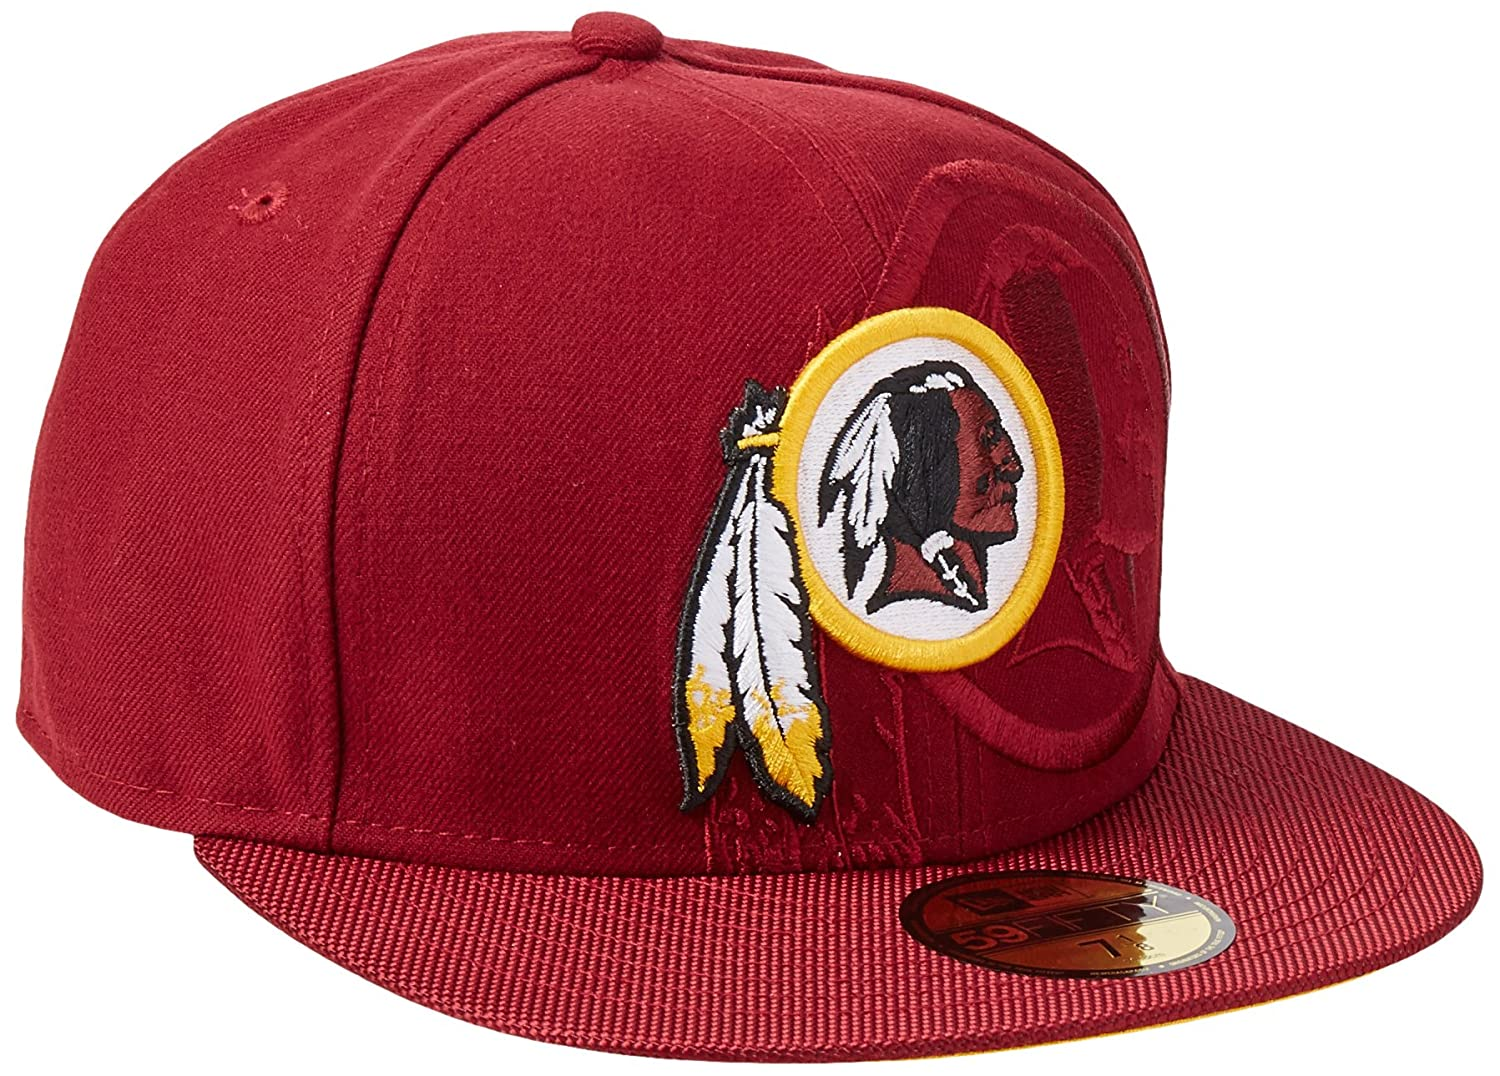 Washington Redskins New Era Burdeos 2016 Diseño Oficial 59 Fifty ...